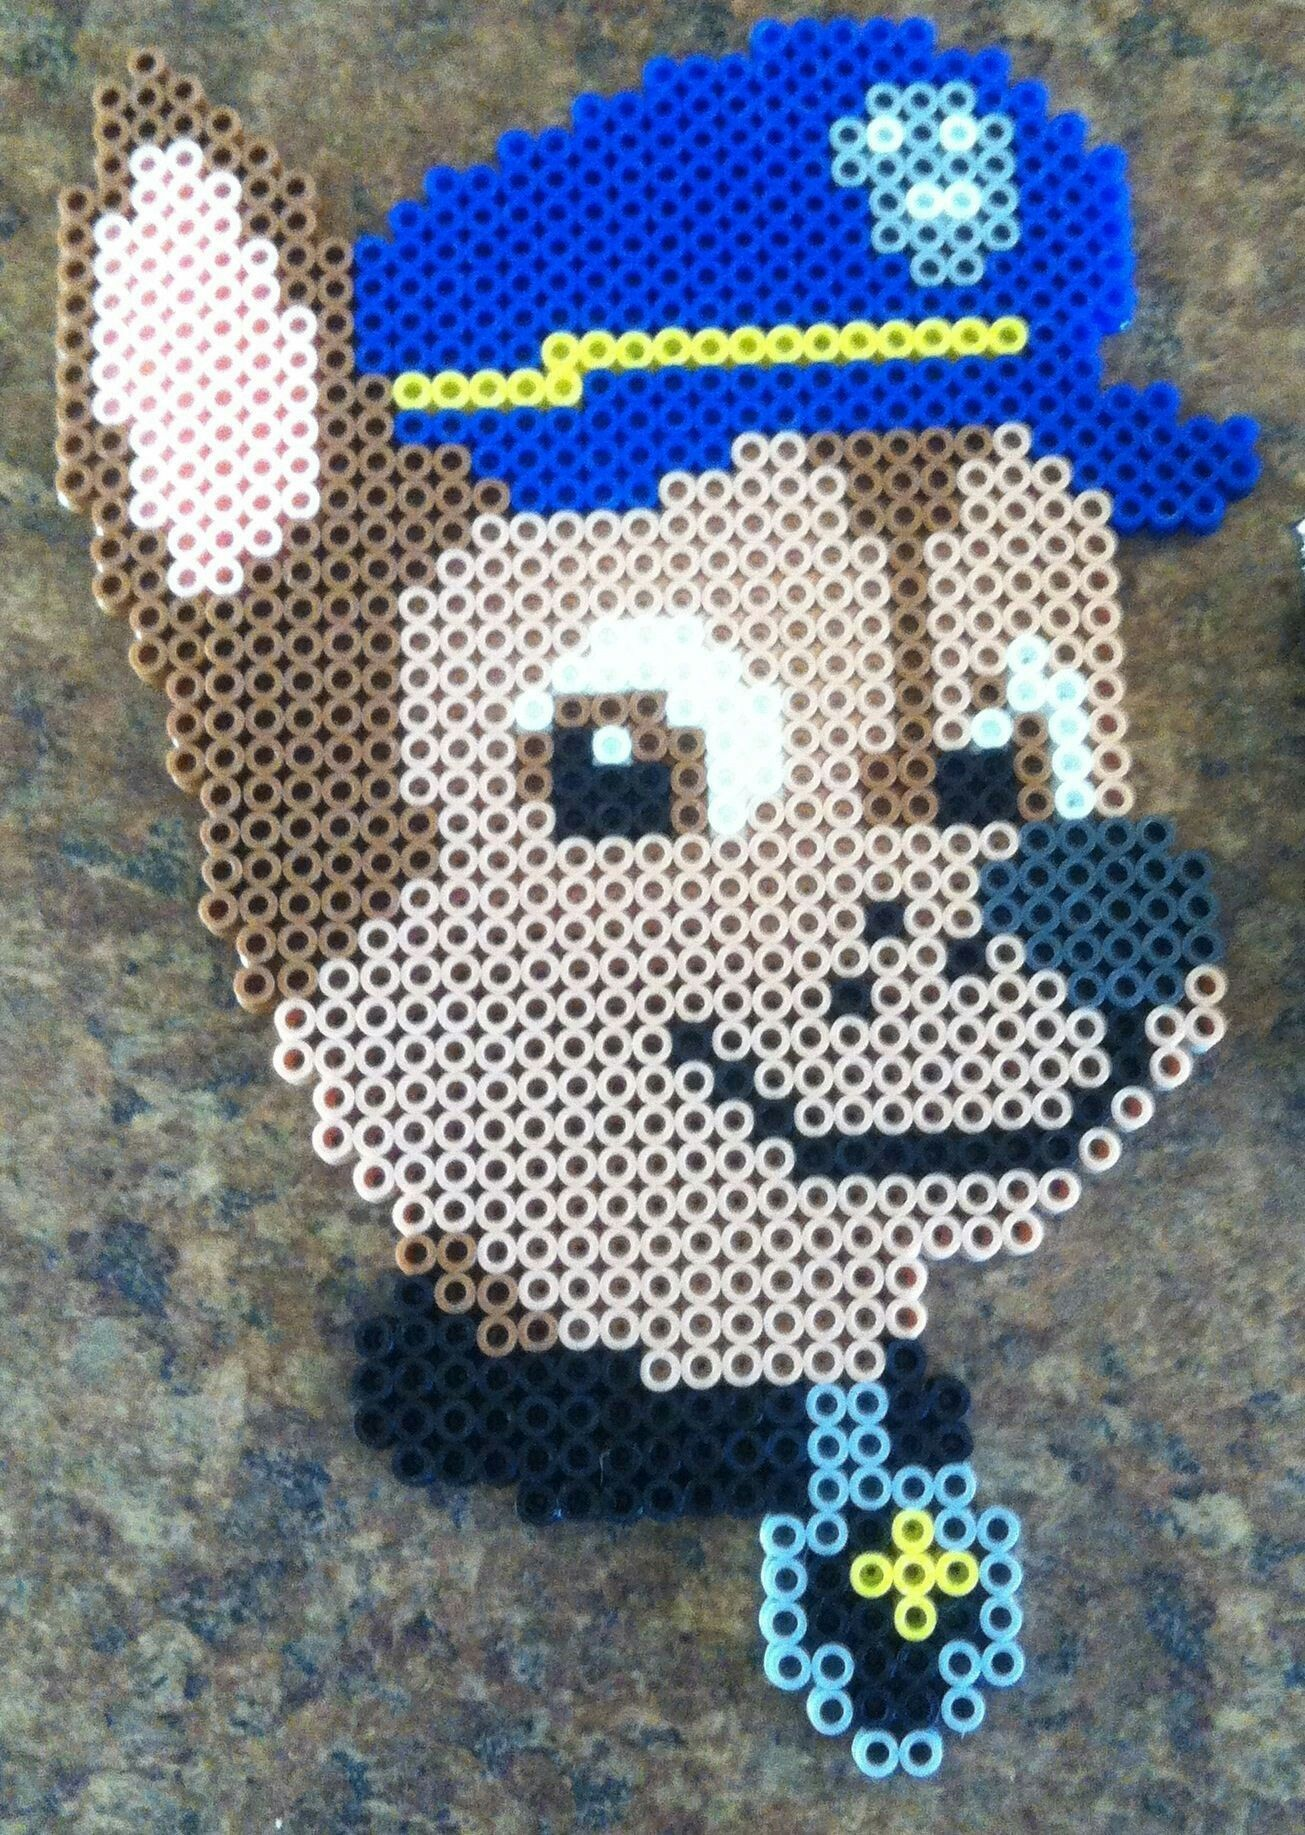 Paw Patrol Perler Bead Necklaces Melted Bead 4